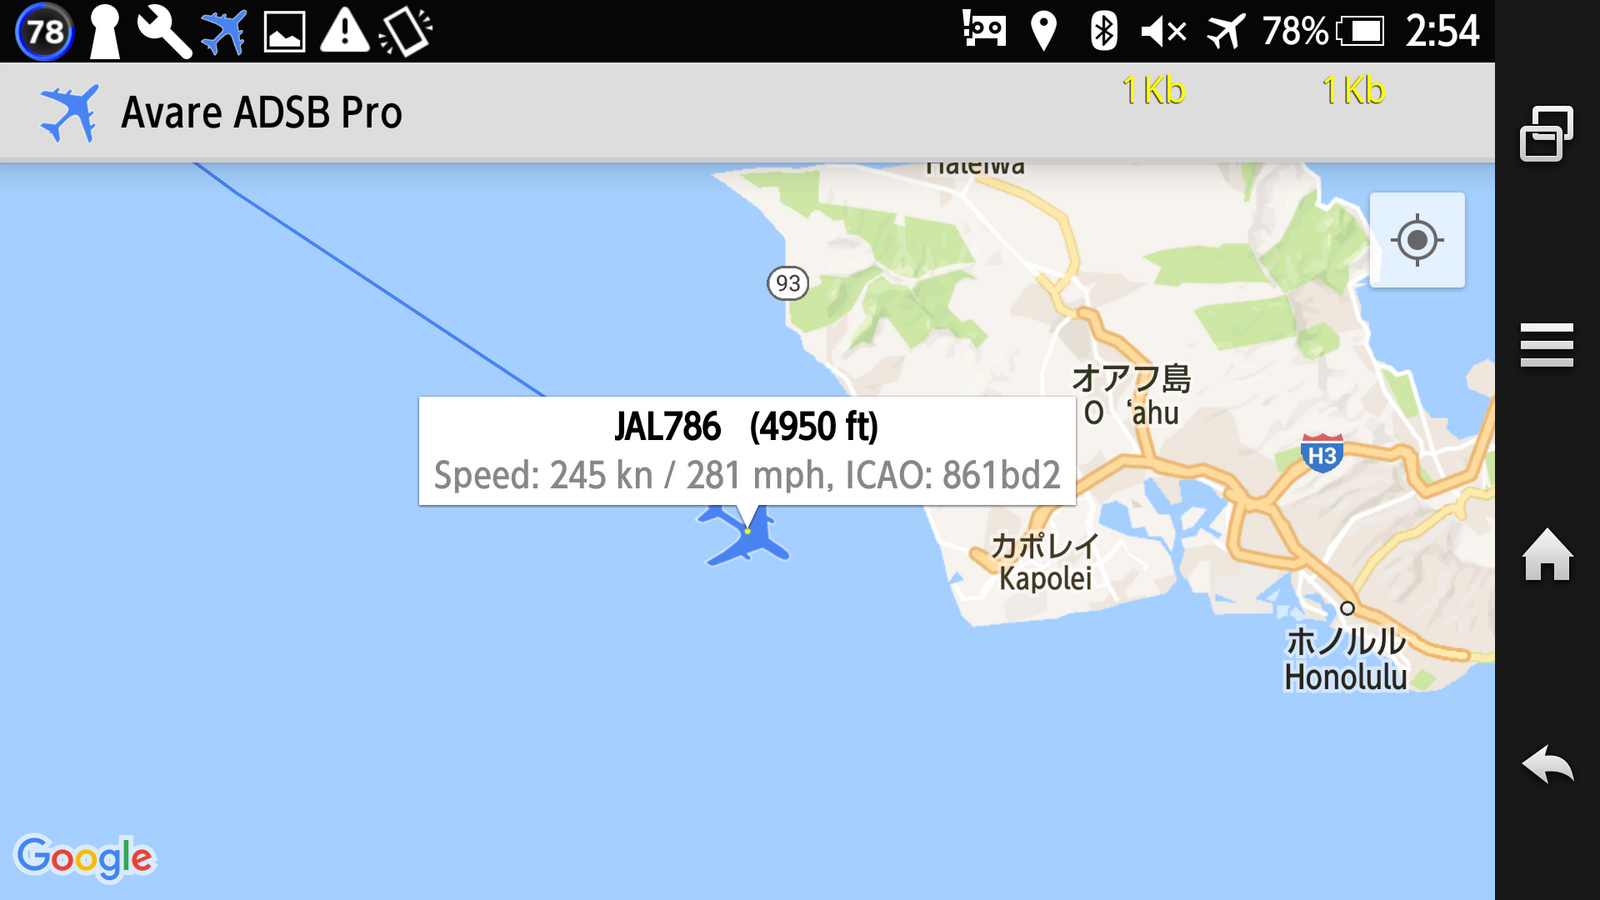 Jal7864950ft